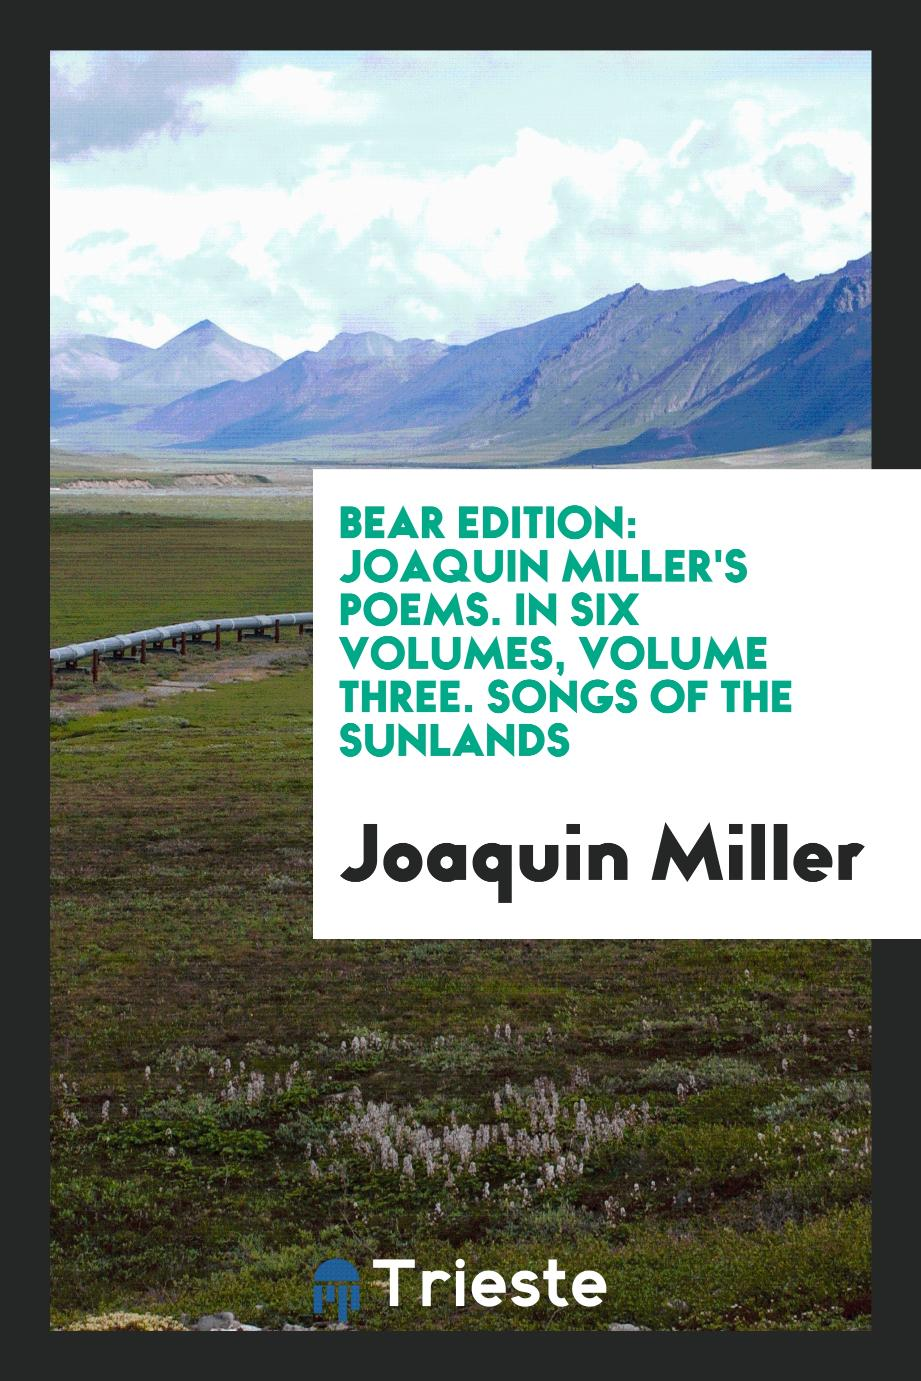 Bear Edition: Joaquin Miller's Poems. In Six Volumes, Volume Three. Songs of the Sunlands